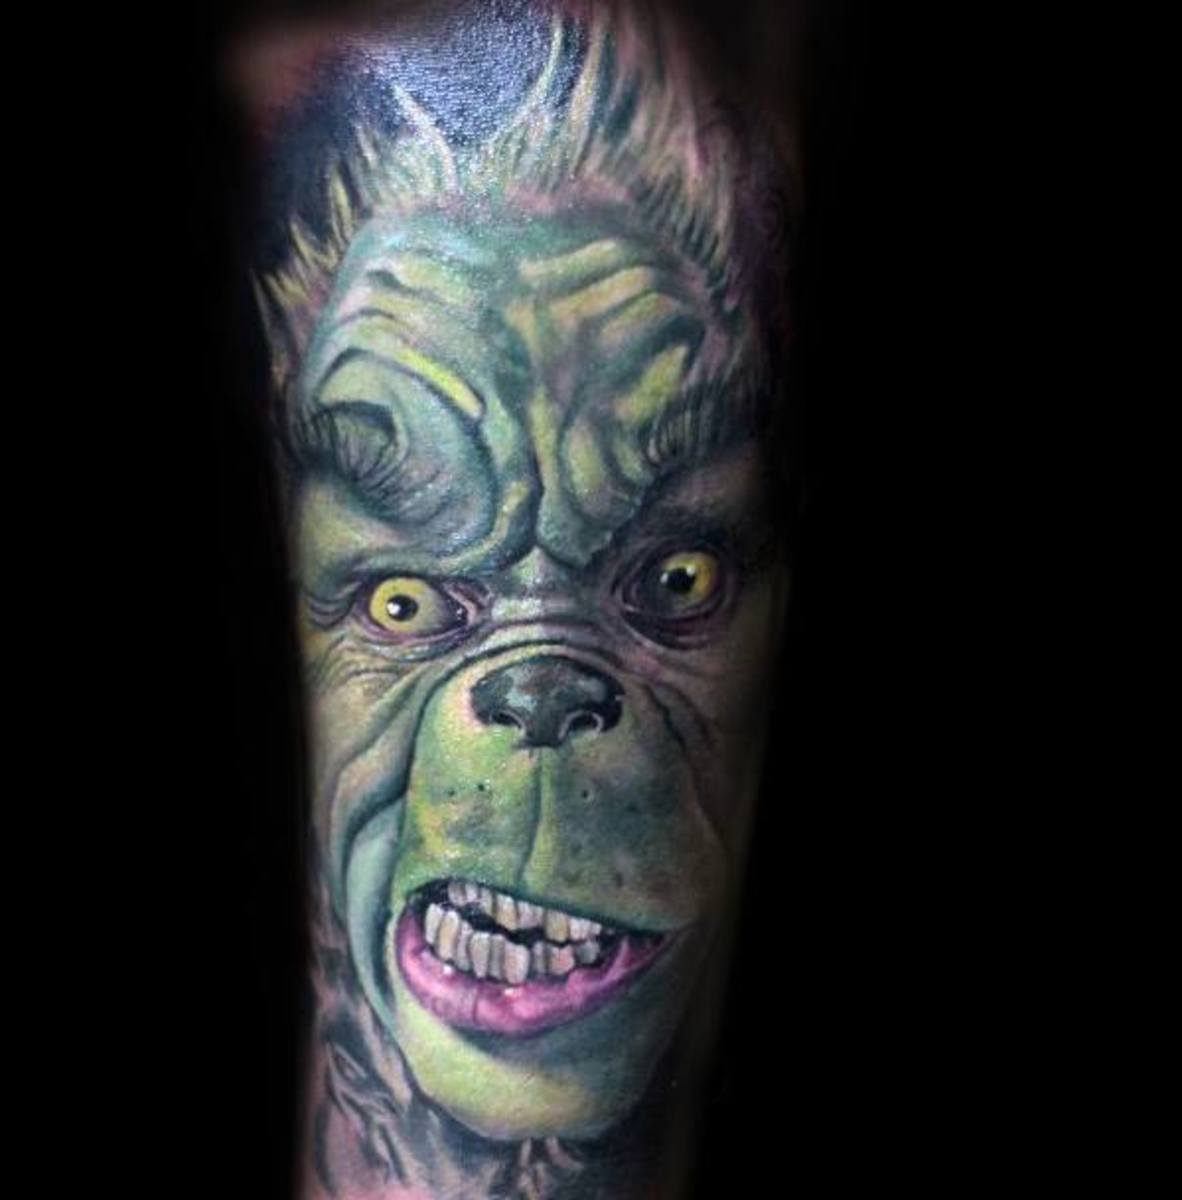 male-with-cool-grinch-tattoo-sleeve-design